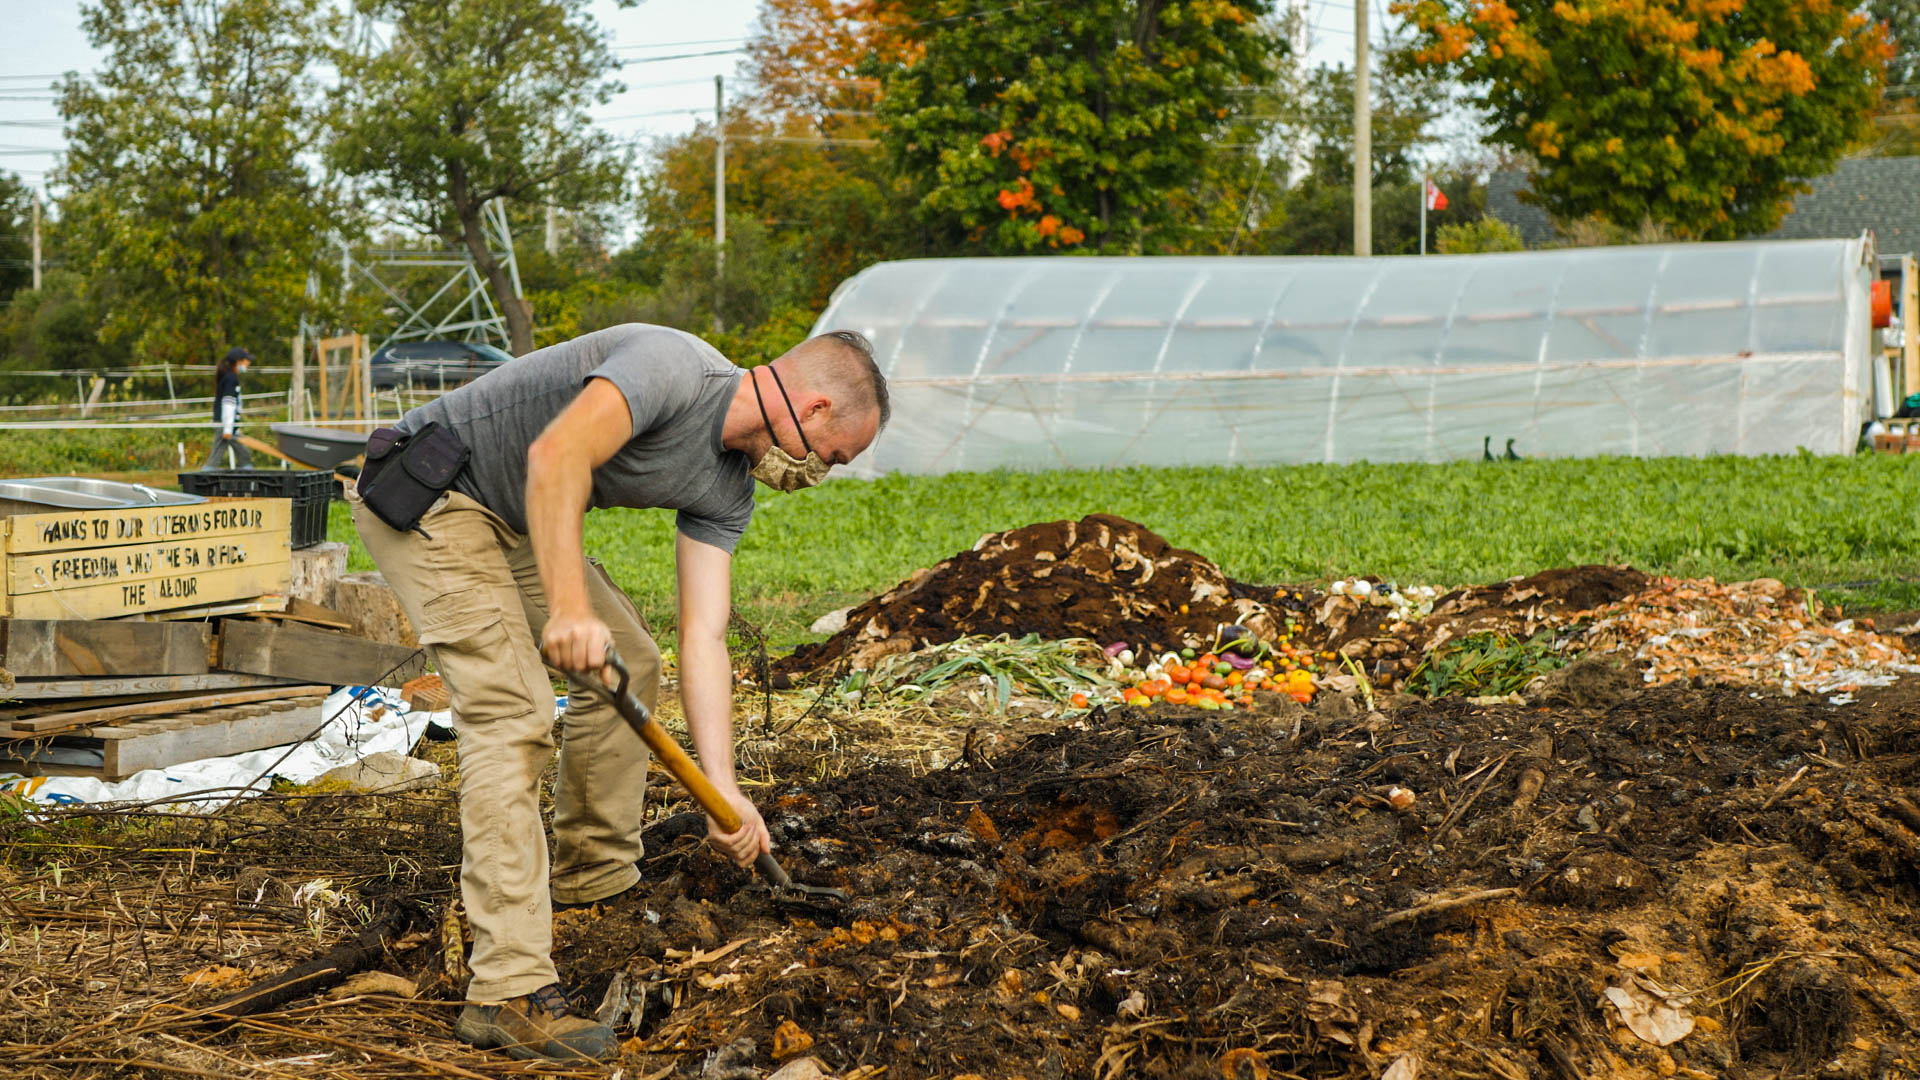 On-farm Manager, Denis shovels the compost material from their Community Compost Program to aerate the pile.